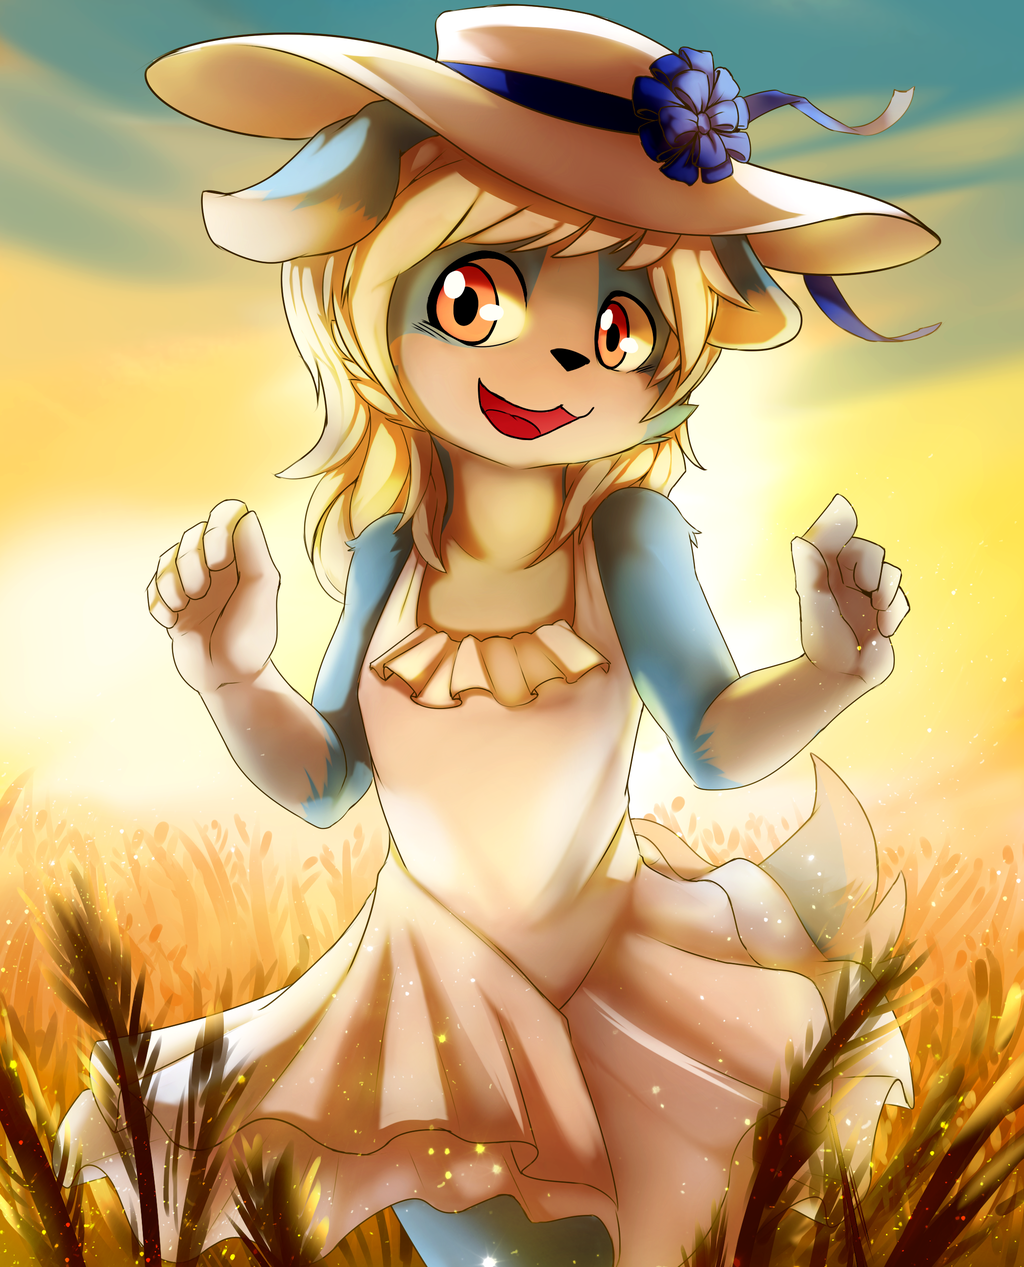 Most recent image: Fields [By Kutto]